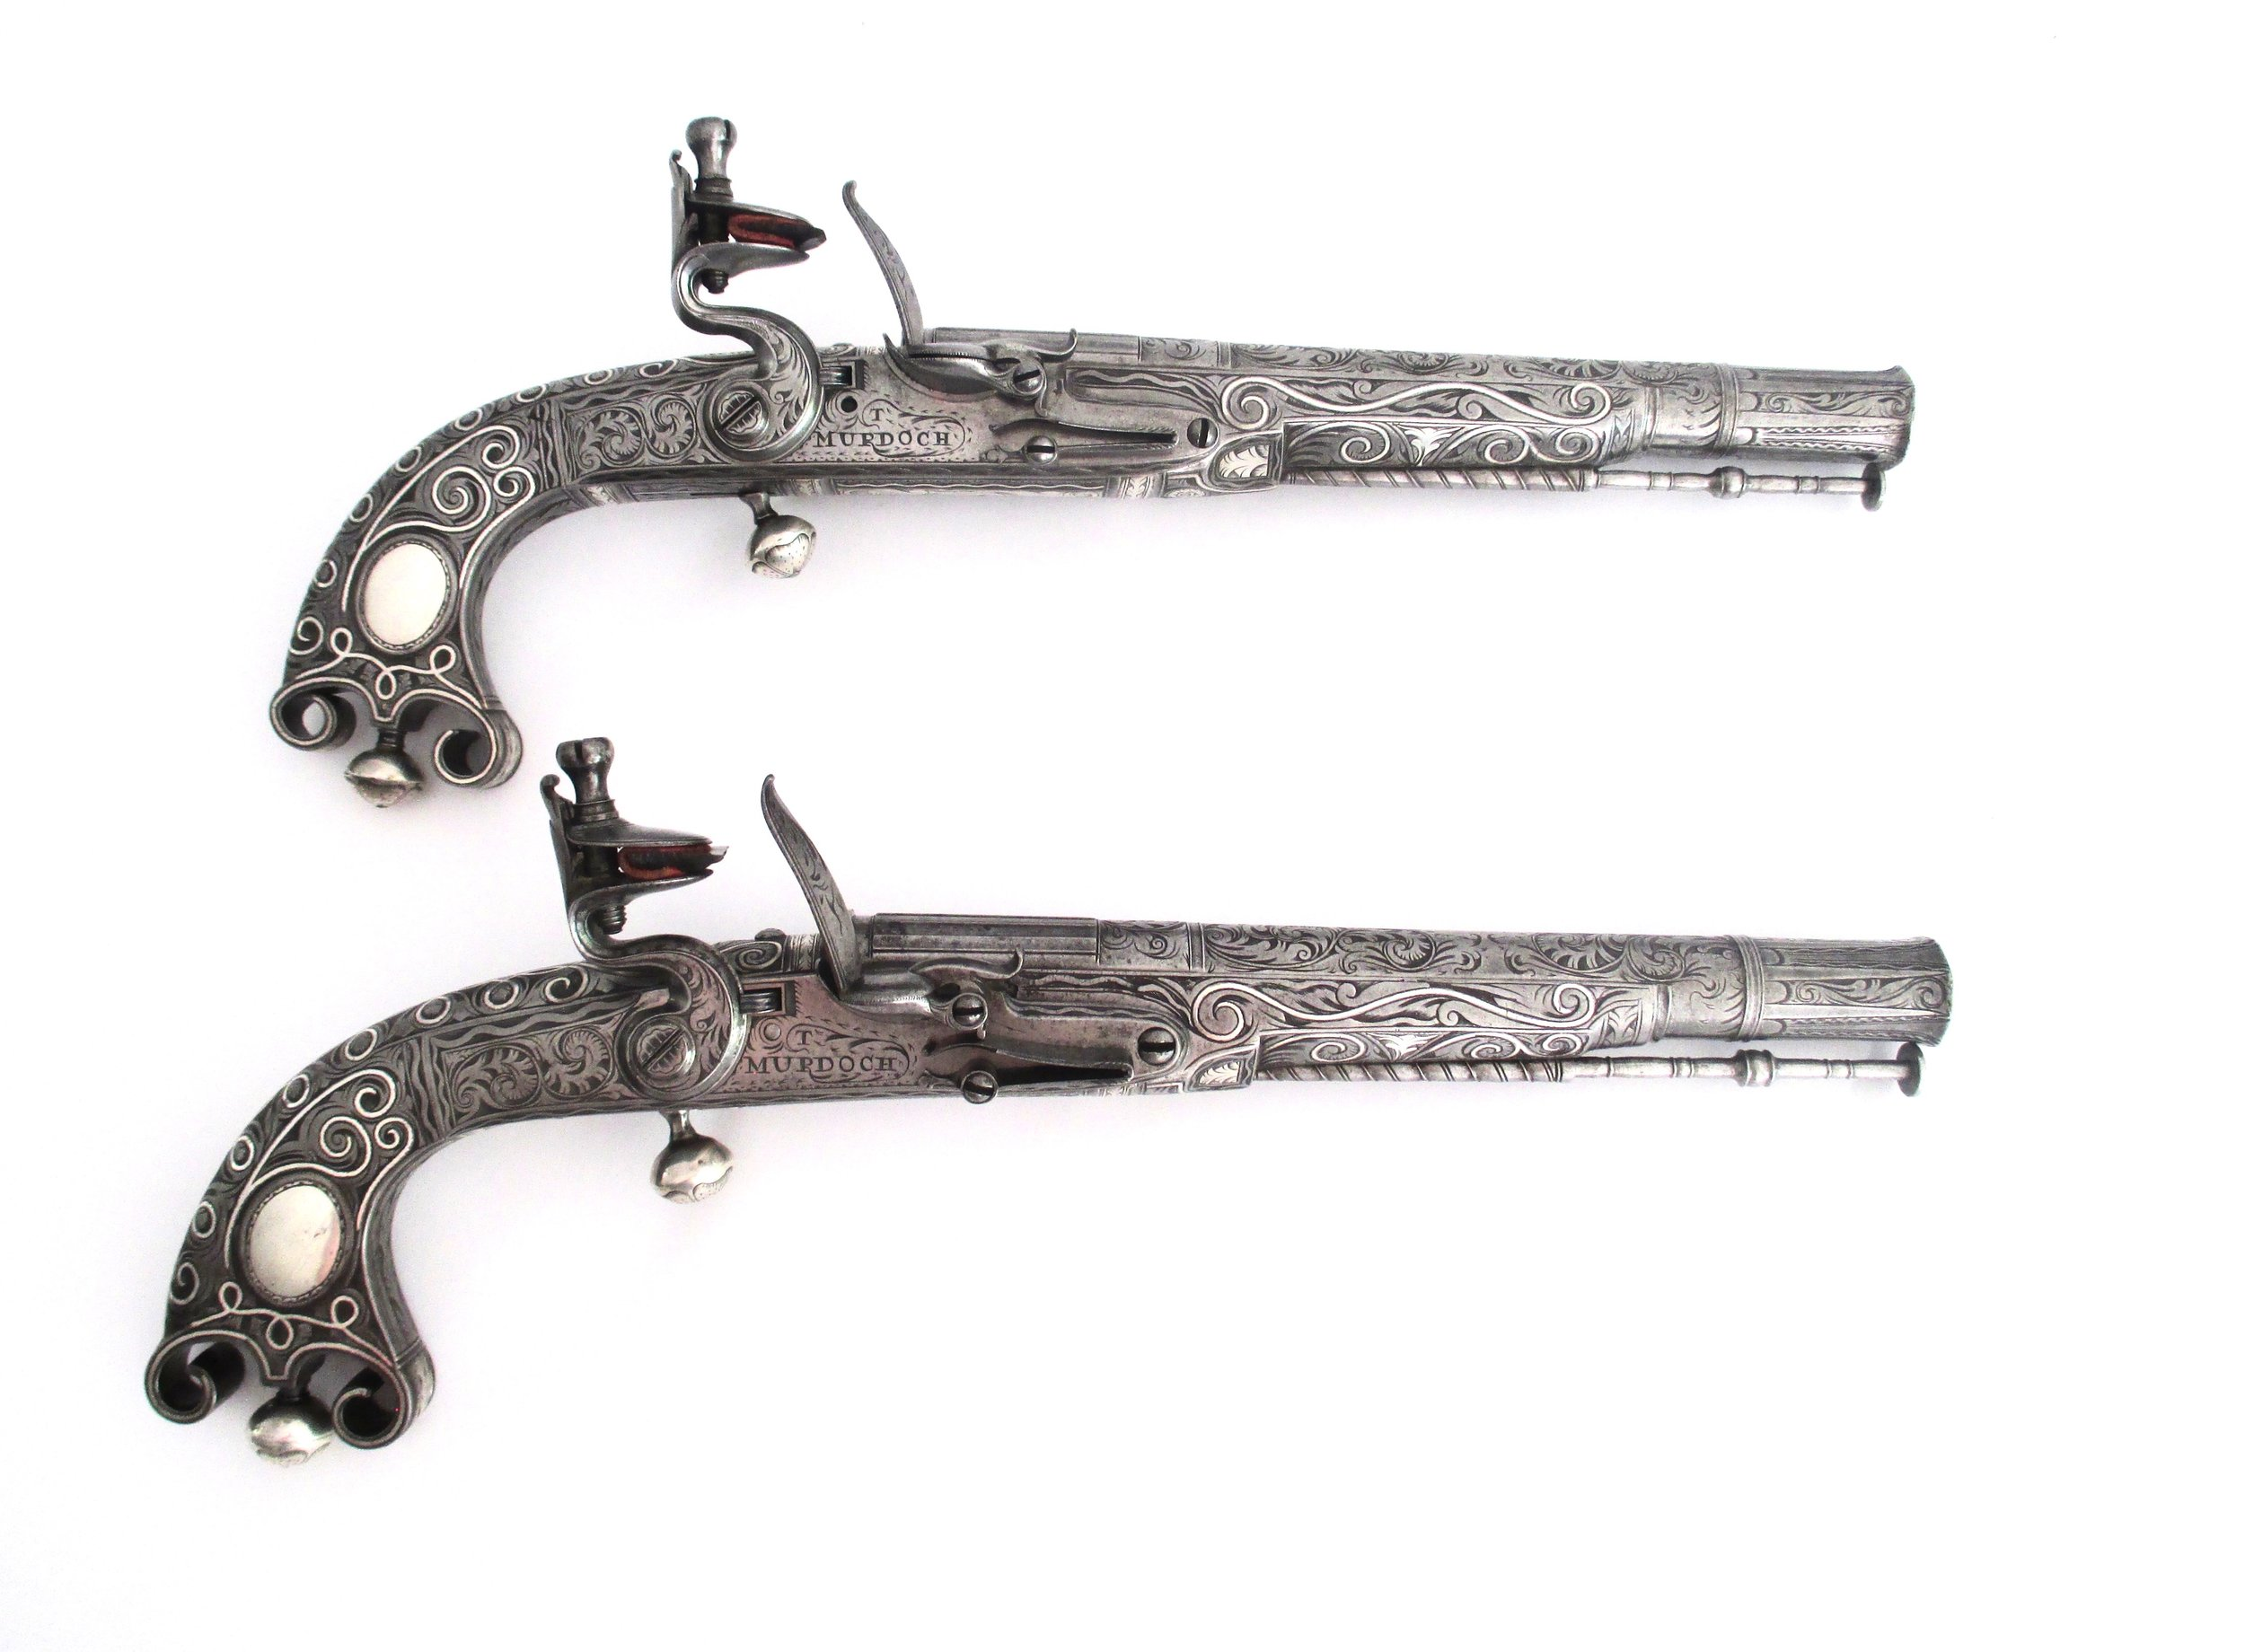 Scottish All-Steel Flintlock Belt Pistols by Thomas Murdock of Doune and Leith, Circa 1770-gary-friedland.jpg